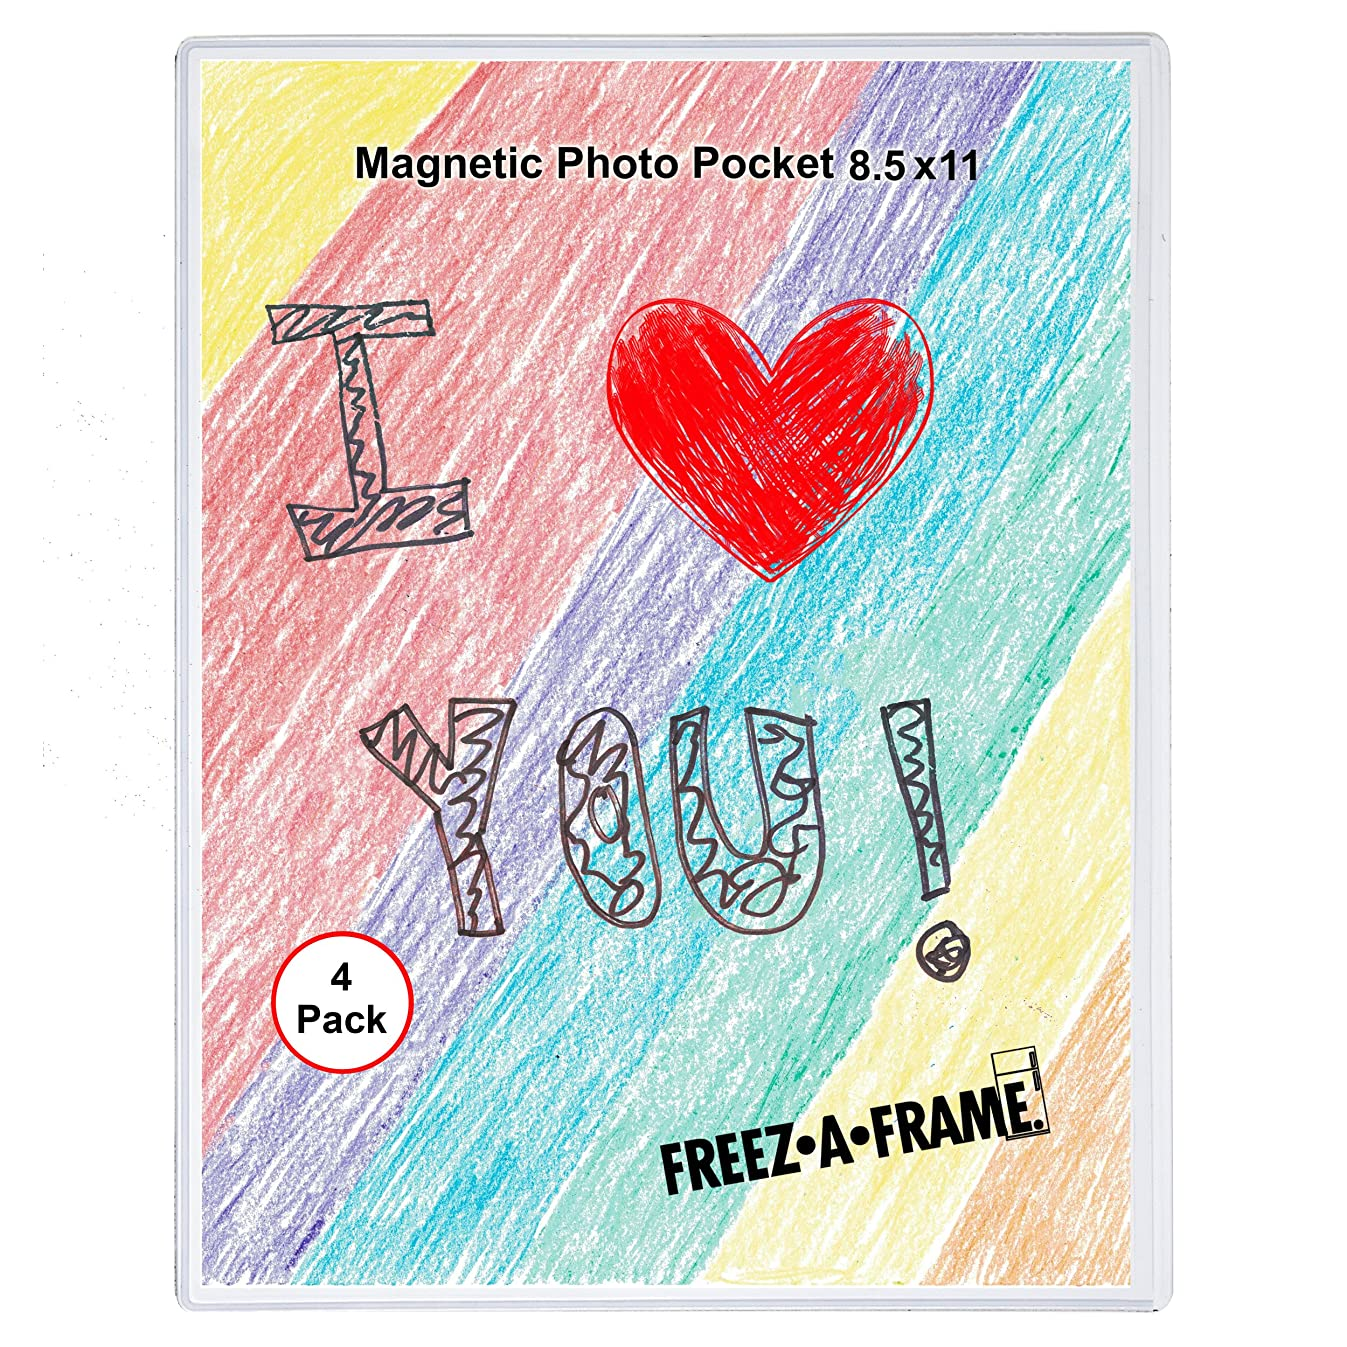 4 Pack 8.5 X 11 Magnetic Picture Frame Use for 8 X 10 Photo, Children's Artwork Frame, Magnetic Calendar Plastic Refrigerator Insert Holder Sleeve Pocket by Freez-a-Frame Made in the USA